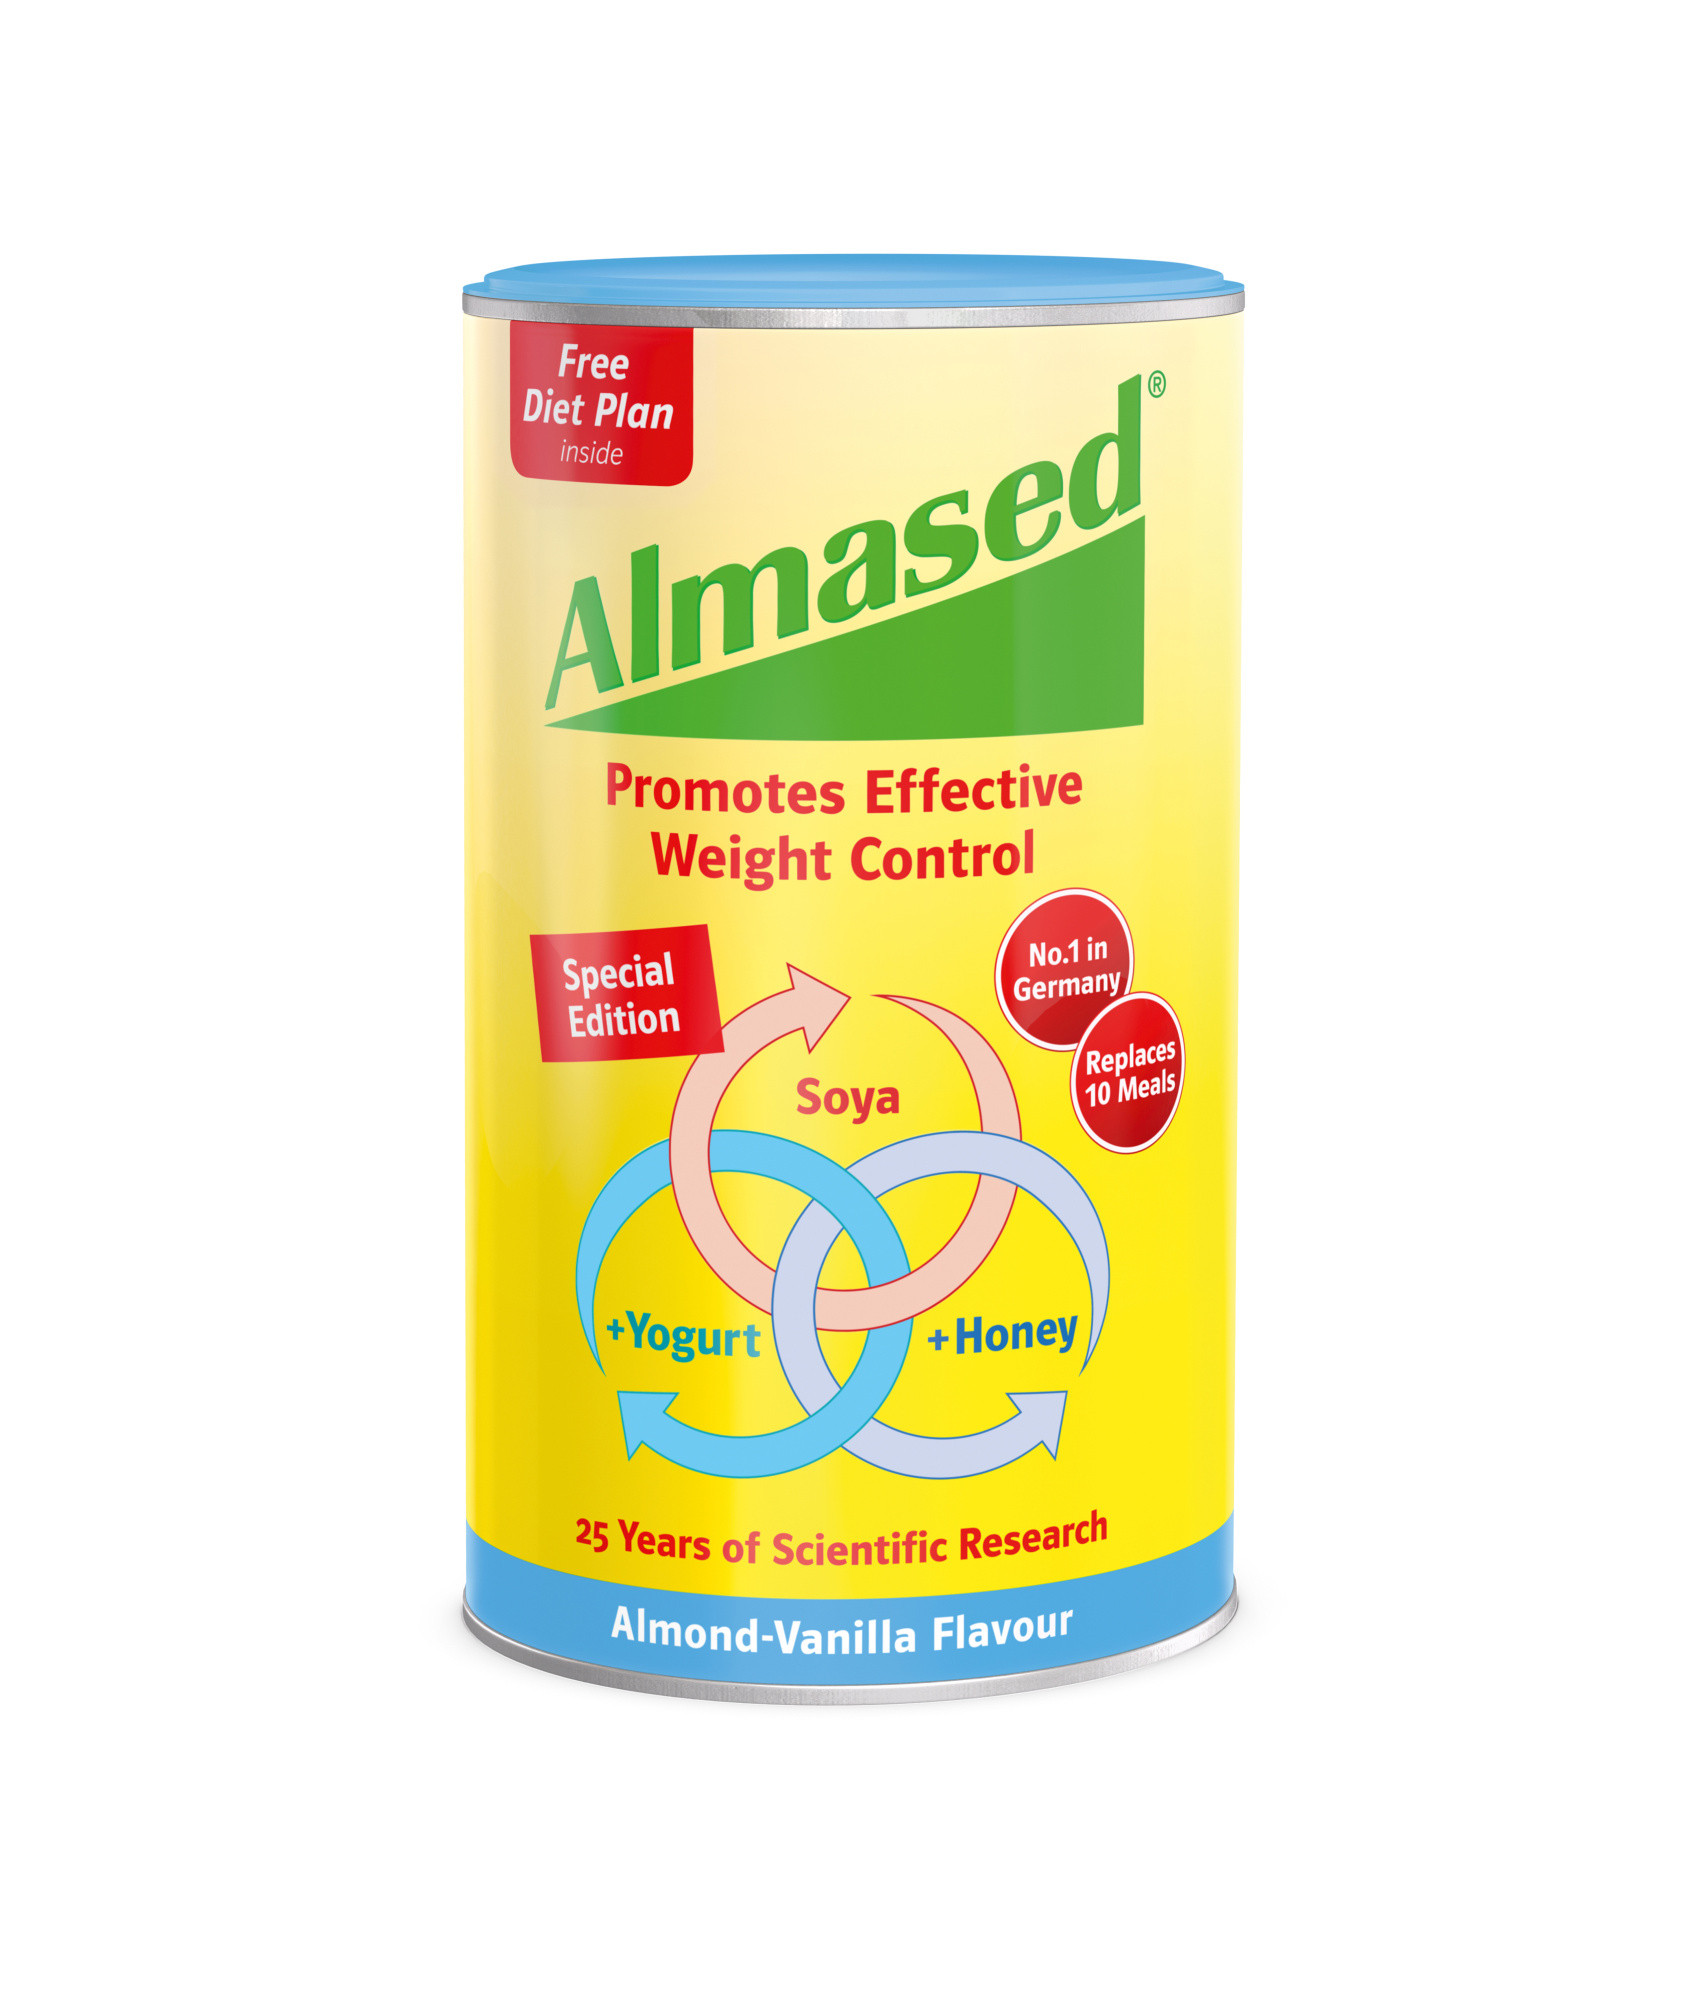 Almased Soya Yogurt and Honey Meal Replacment. Almond Vanilla Flavour